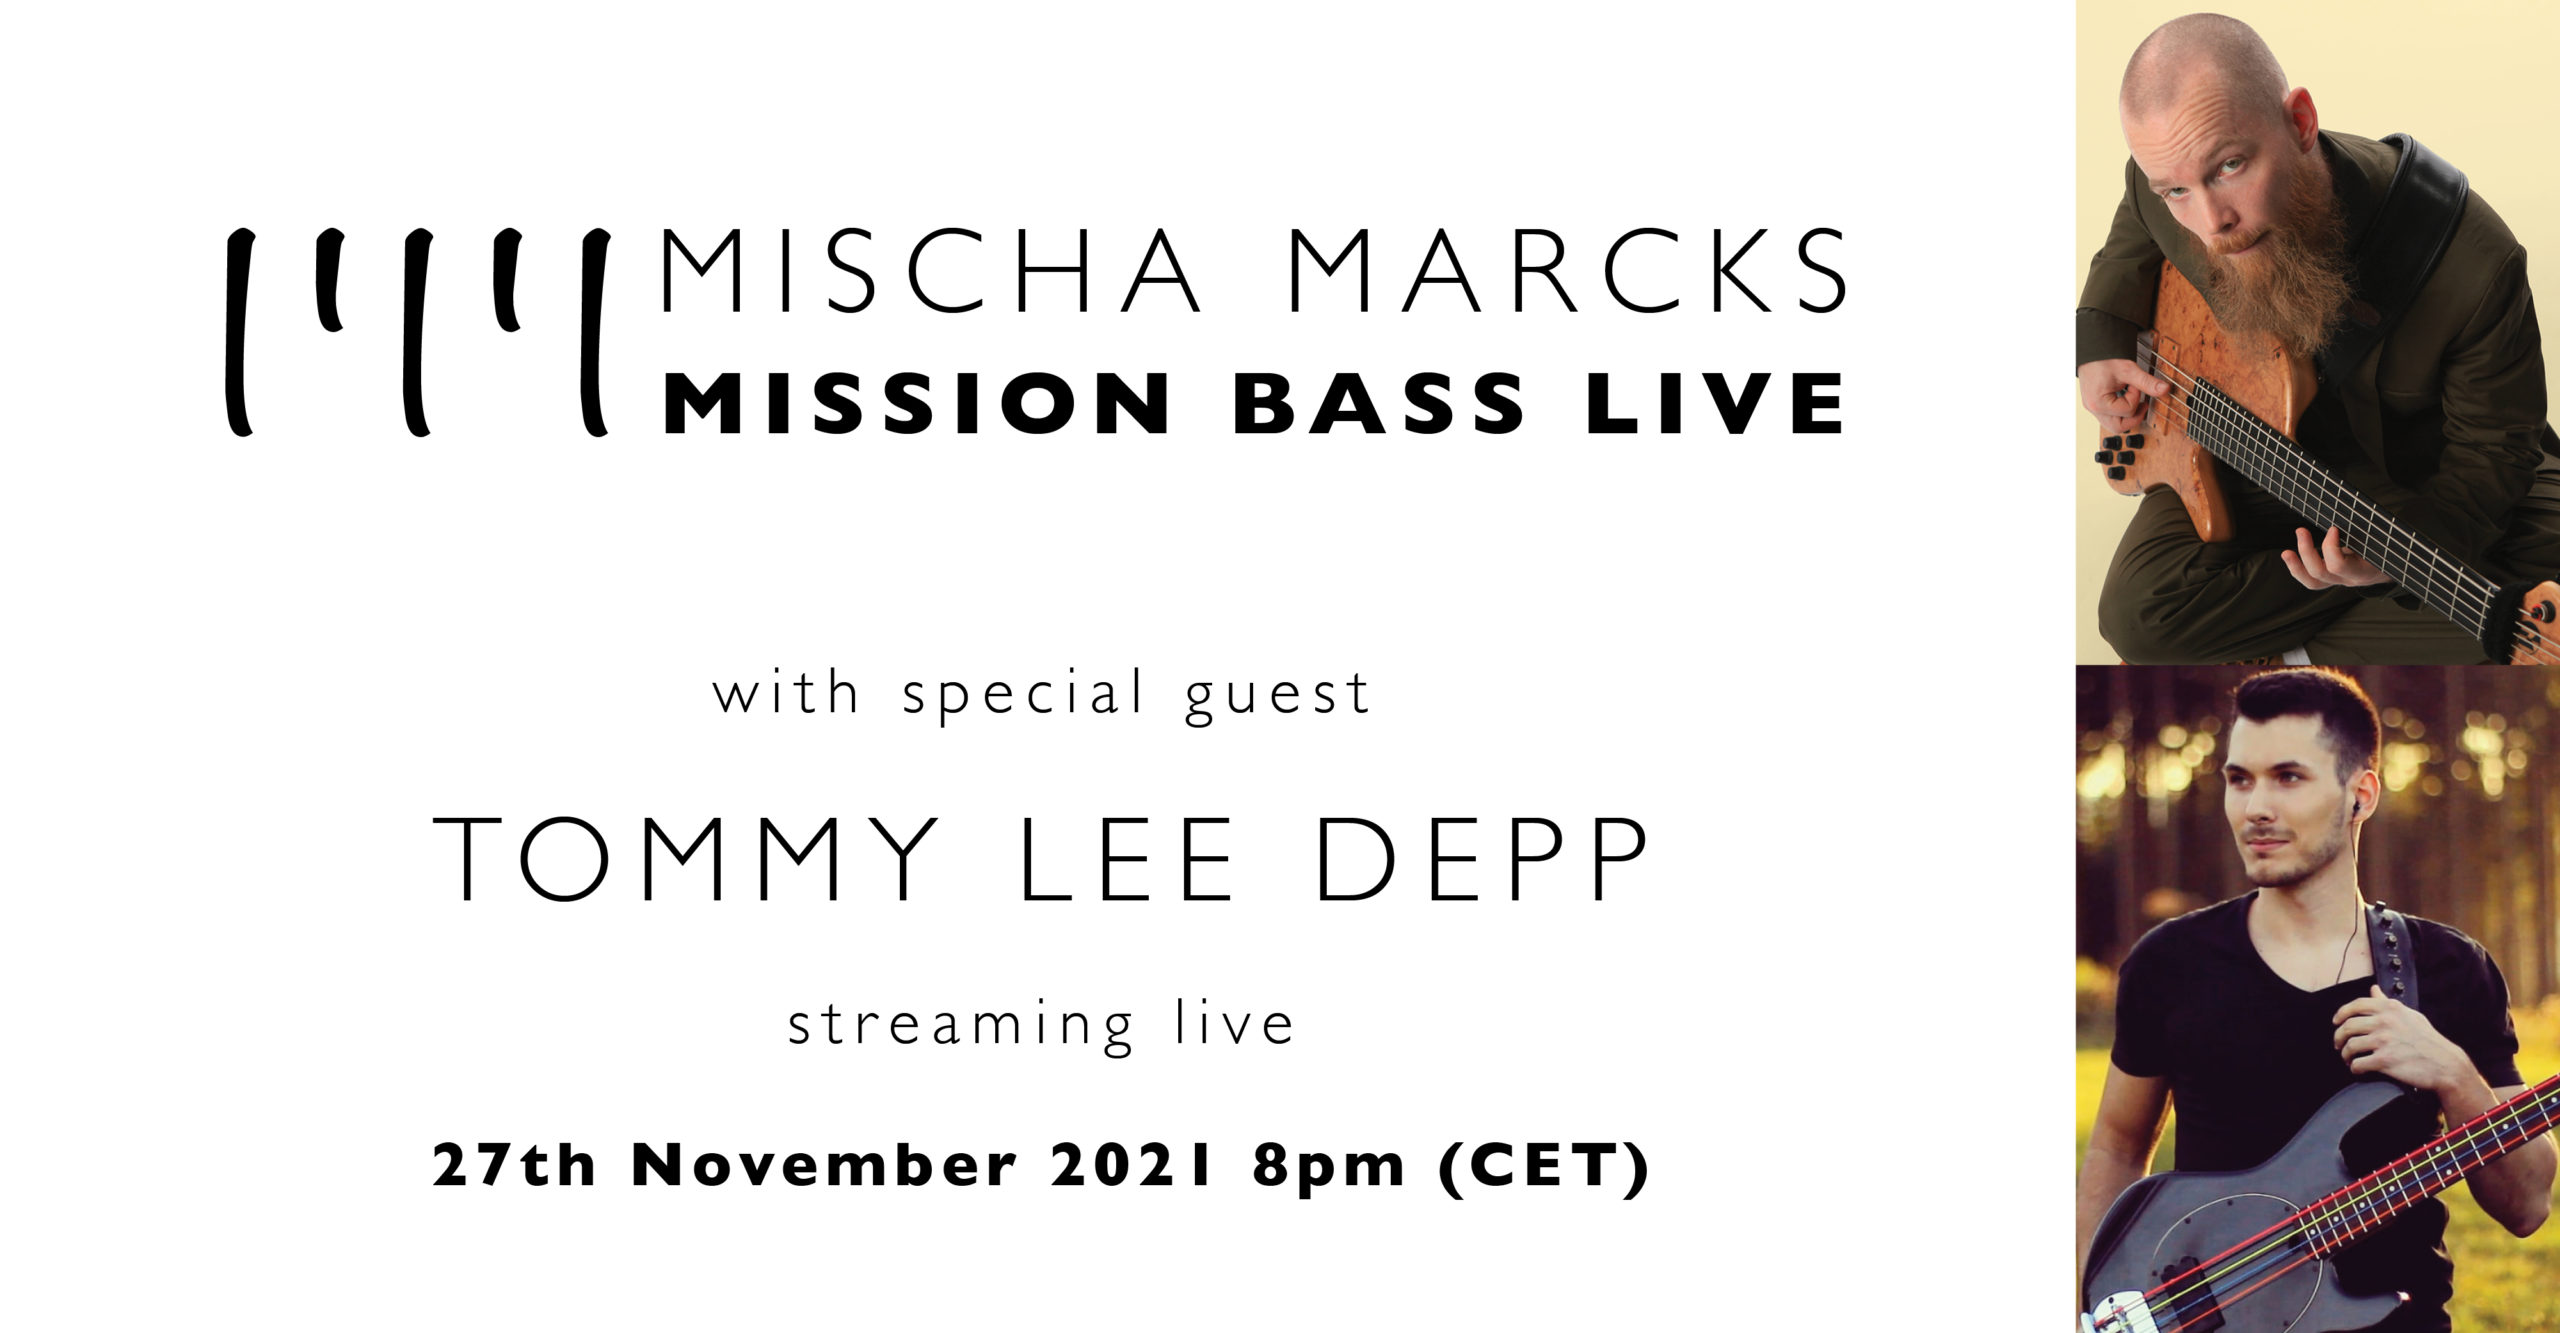 Mischa Marcks presents Mission Bass Live featuring Tommy Lee Depp